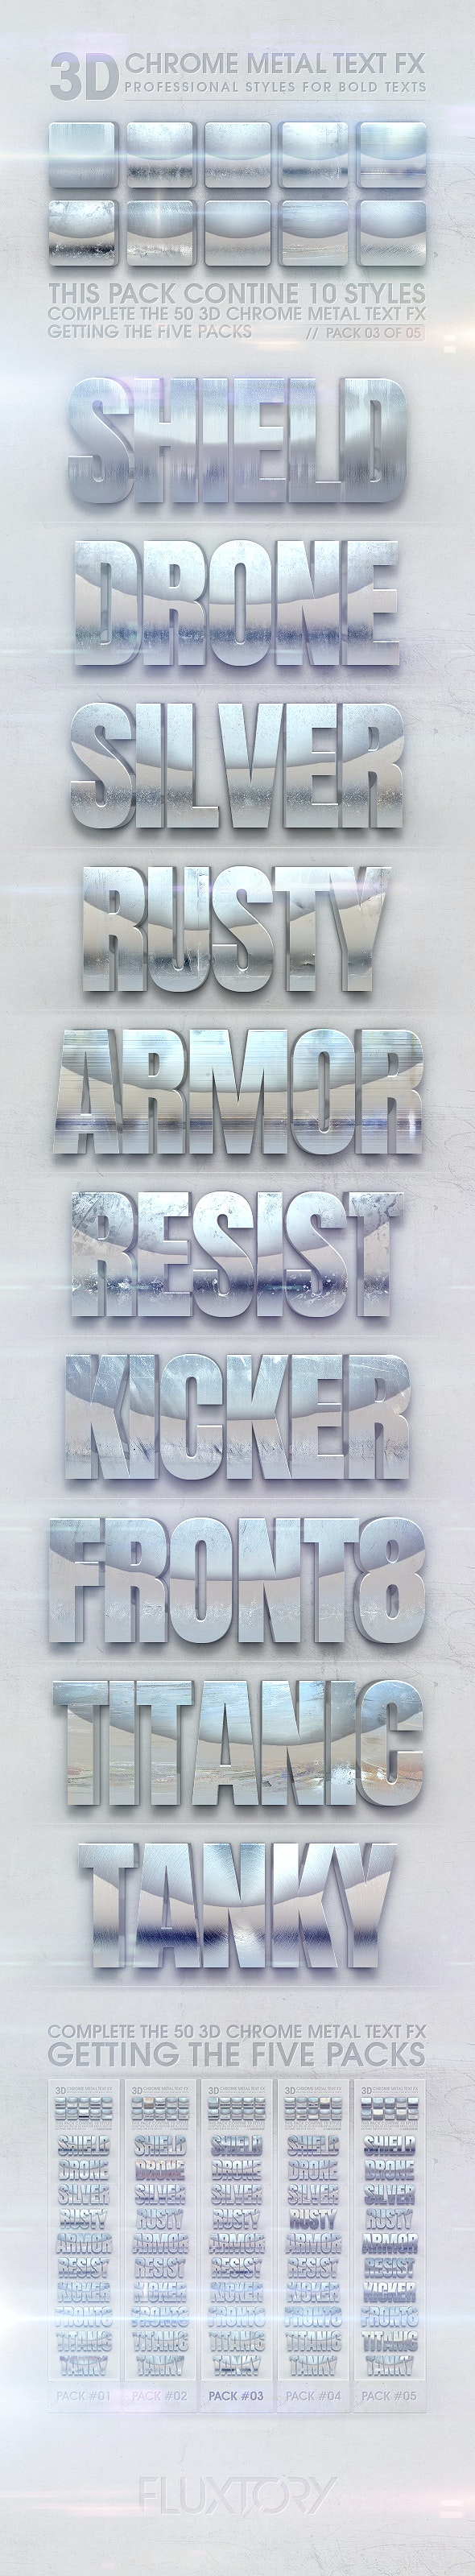 3D Chrome Metal Text FX 03 of 05 - Text Effects Styles